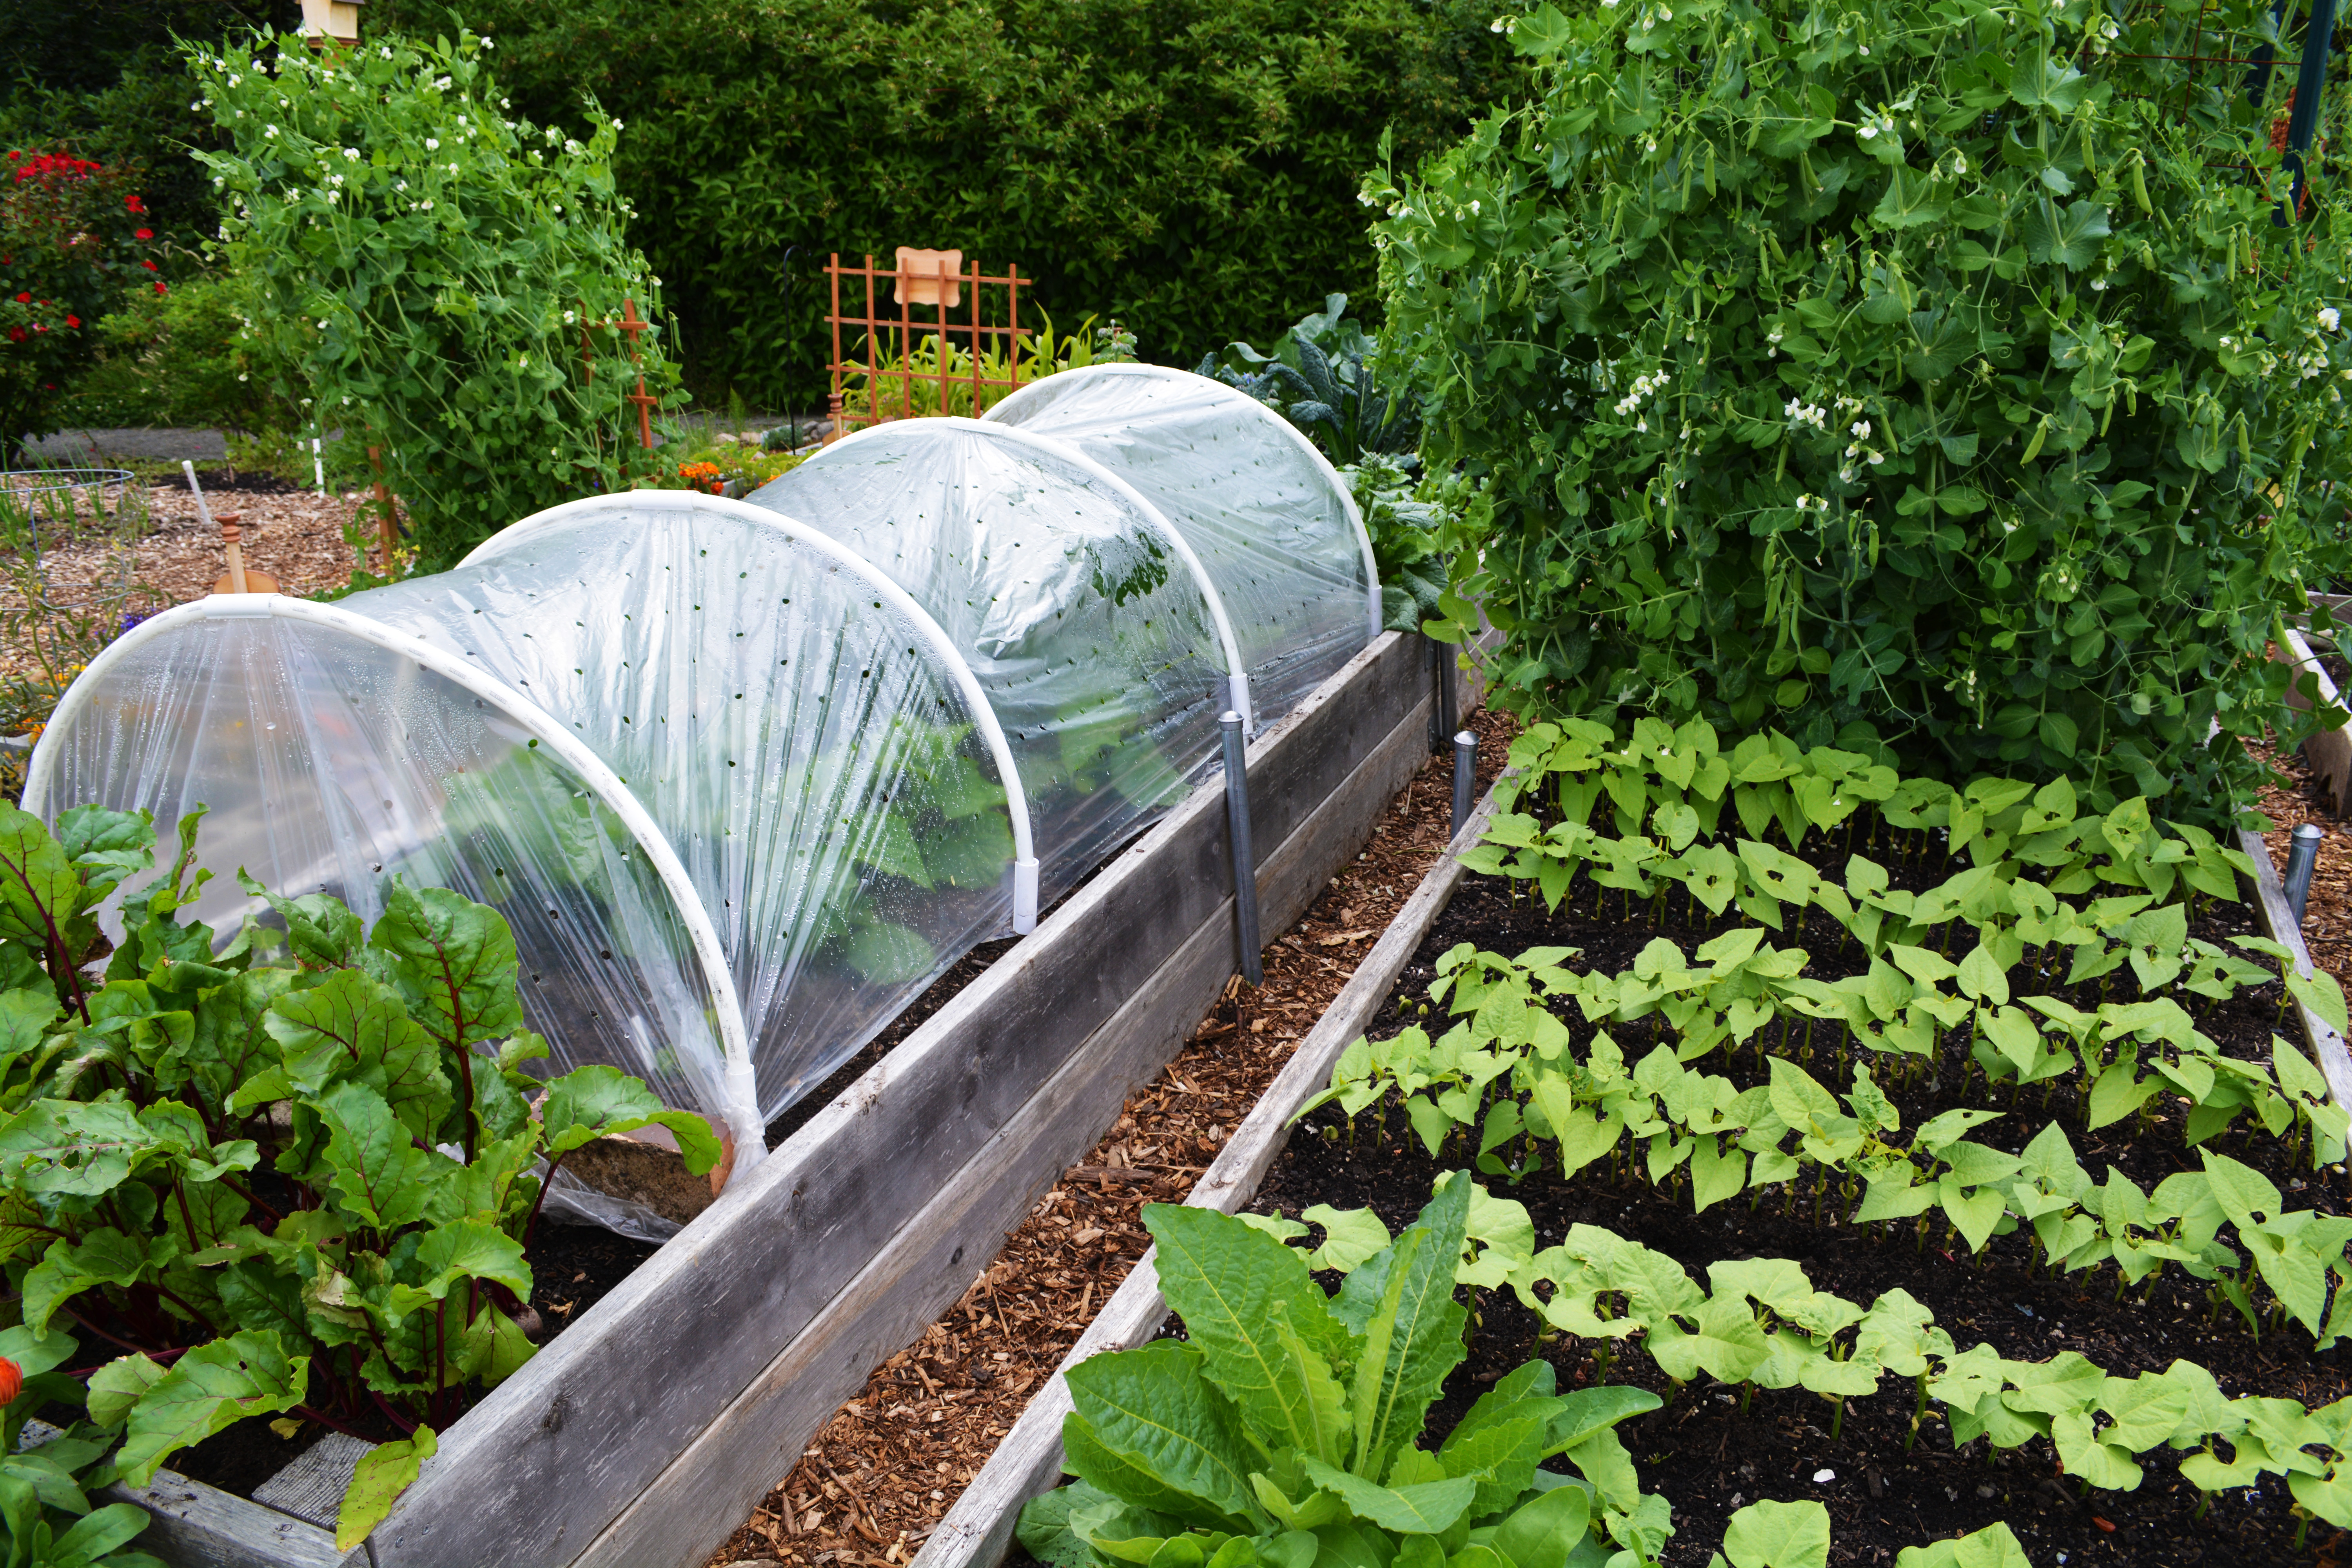 P Patch Vegetable Gardening Our Family 39 S Experience